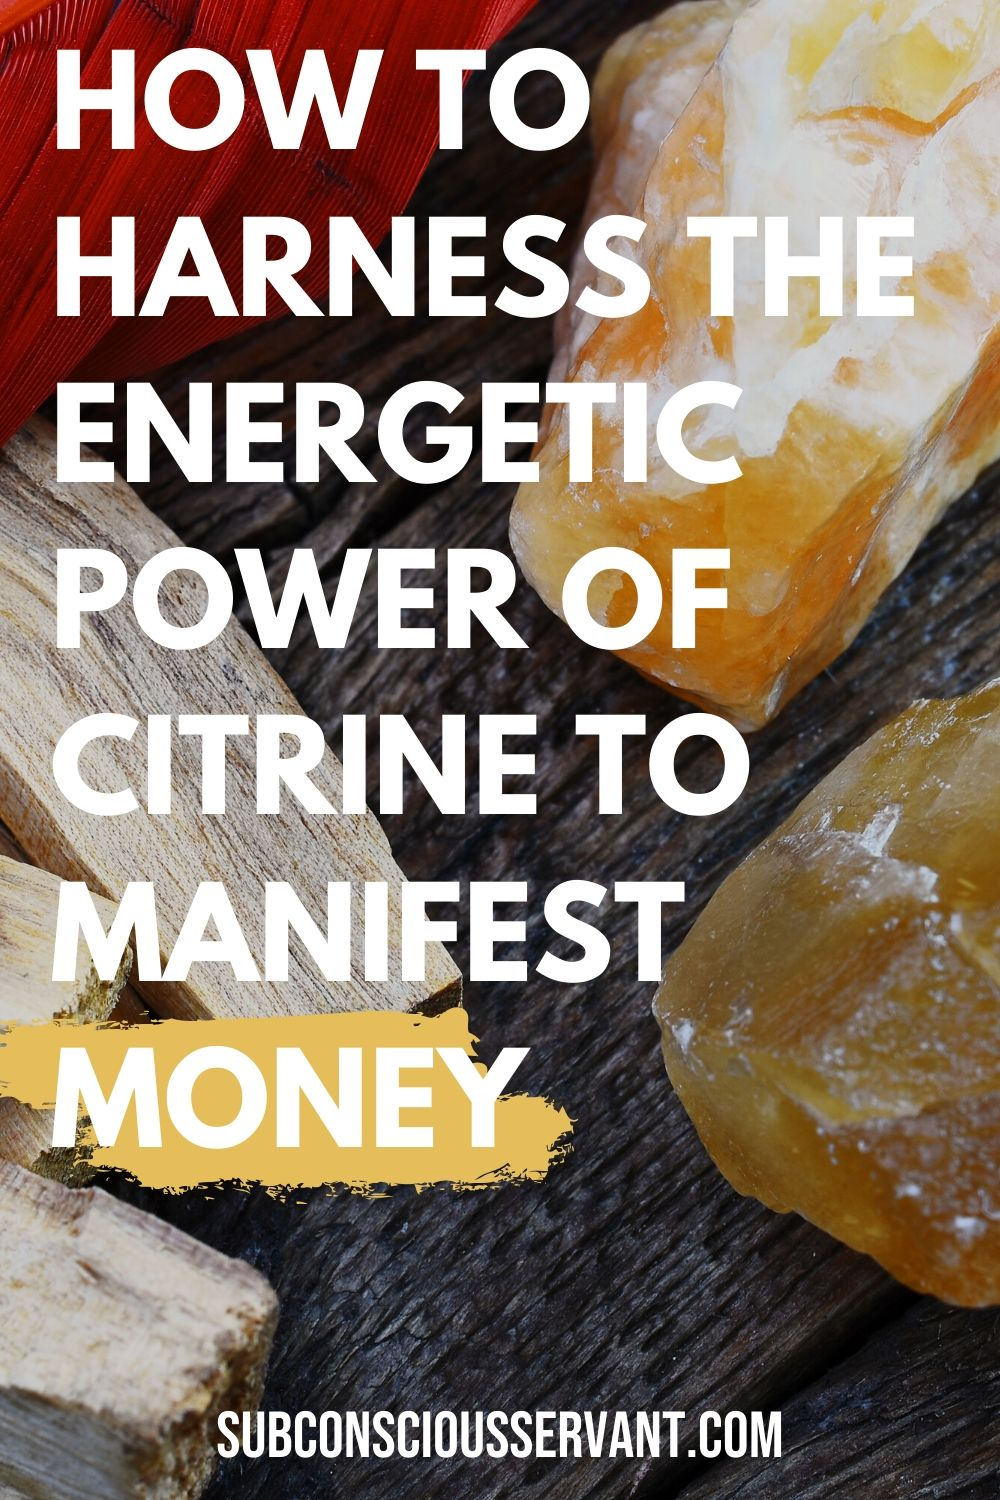 How To Use Citrine To Attract Money – 6 Key Methods